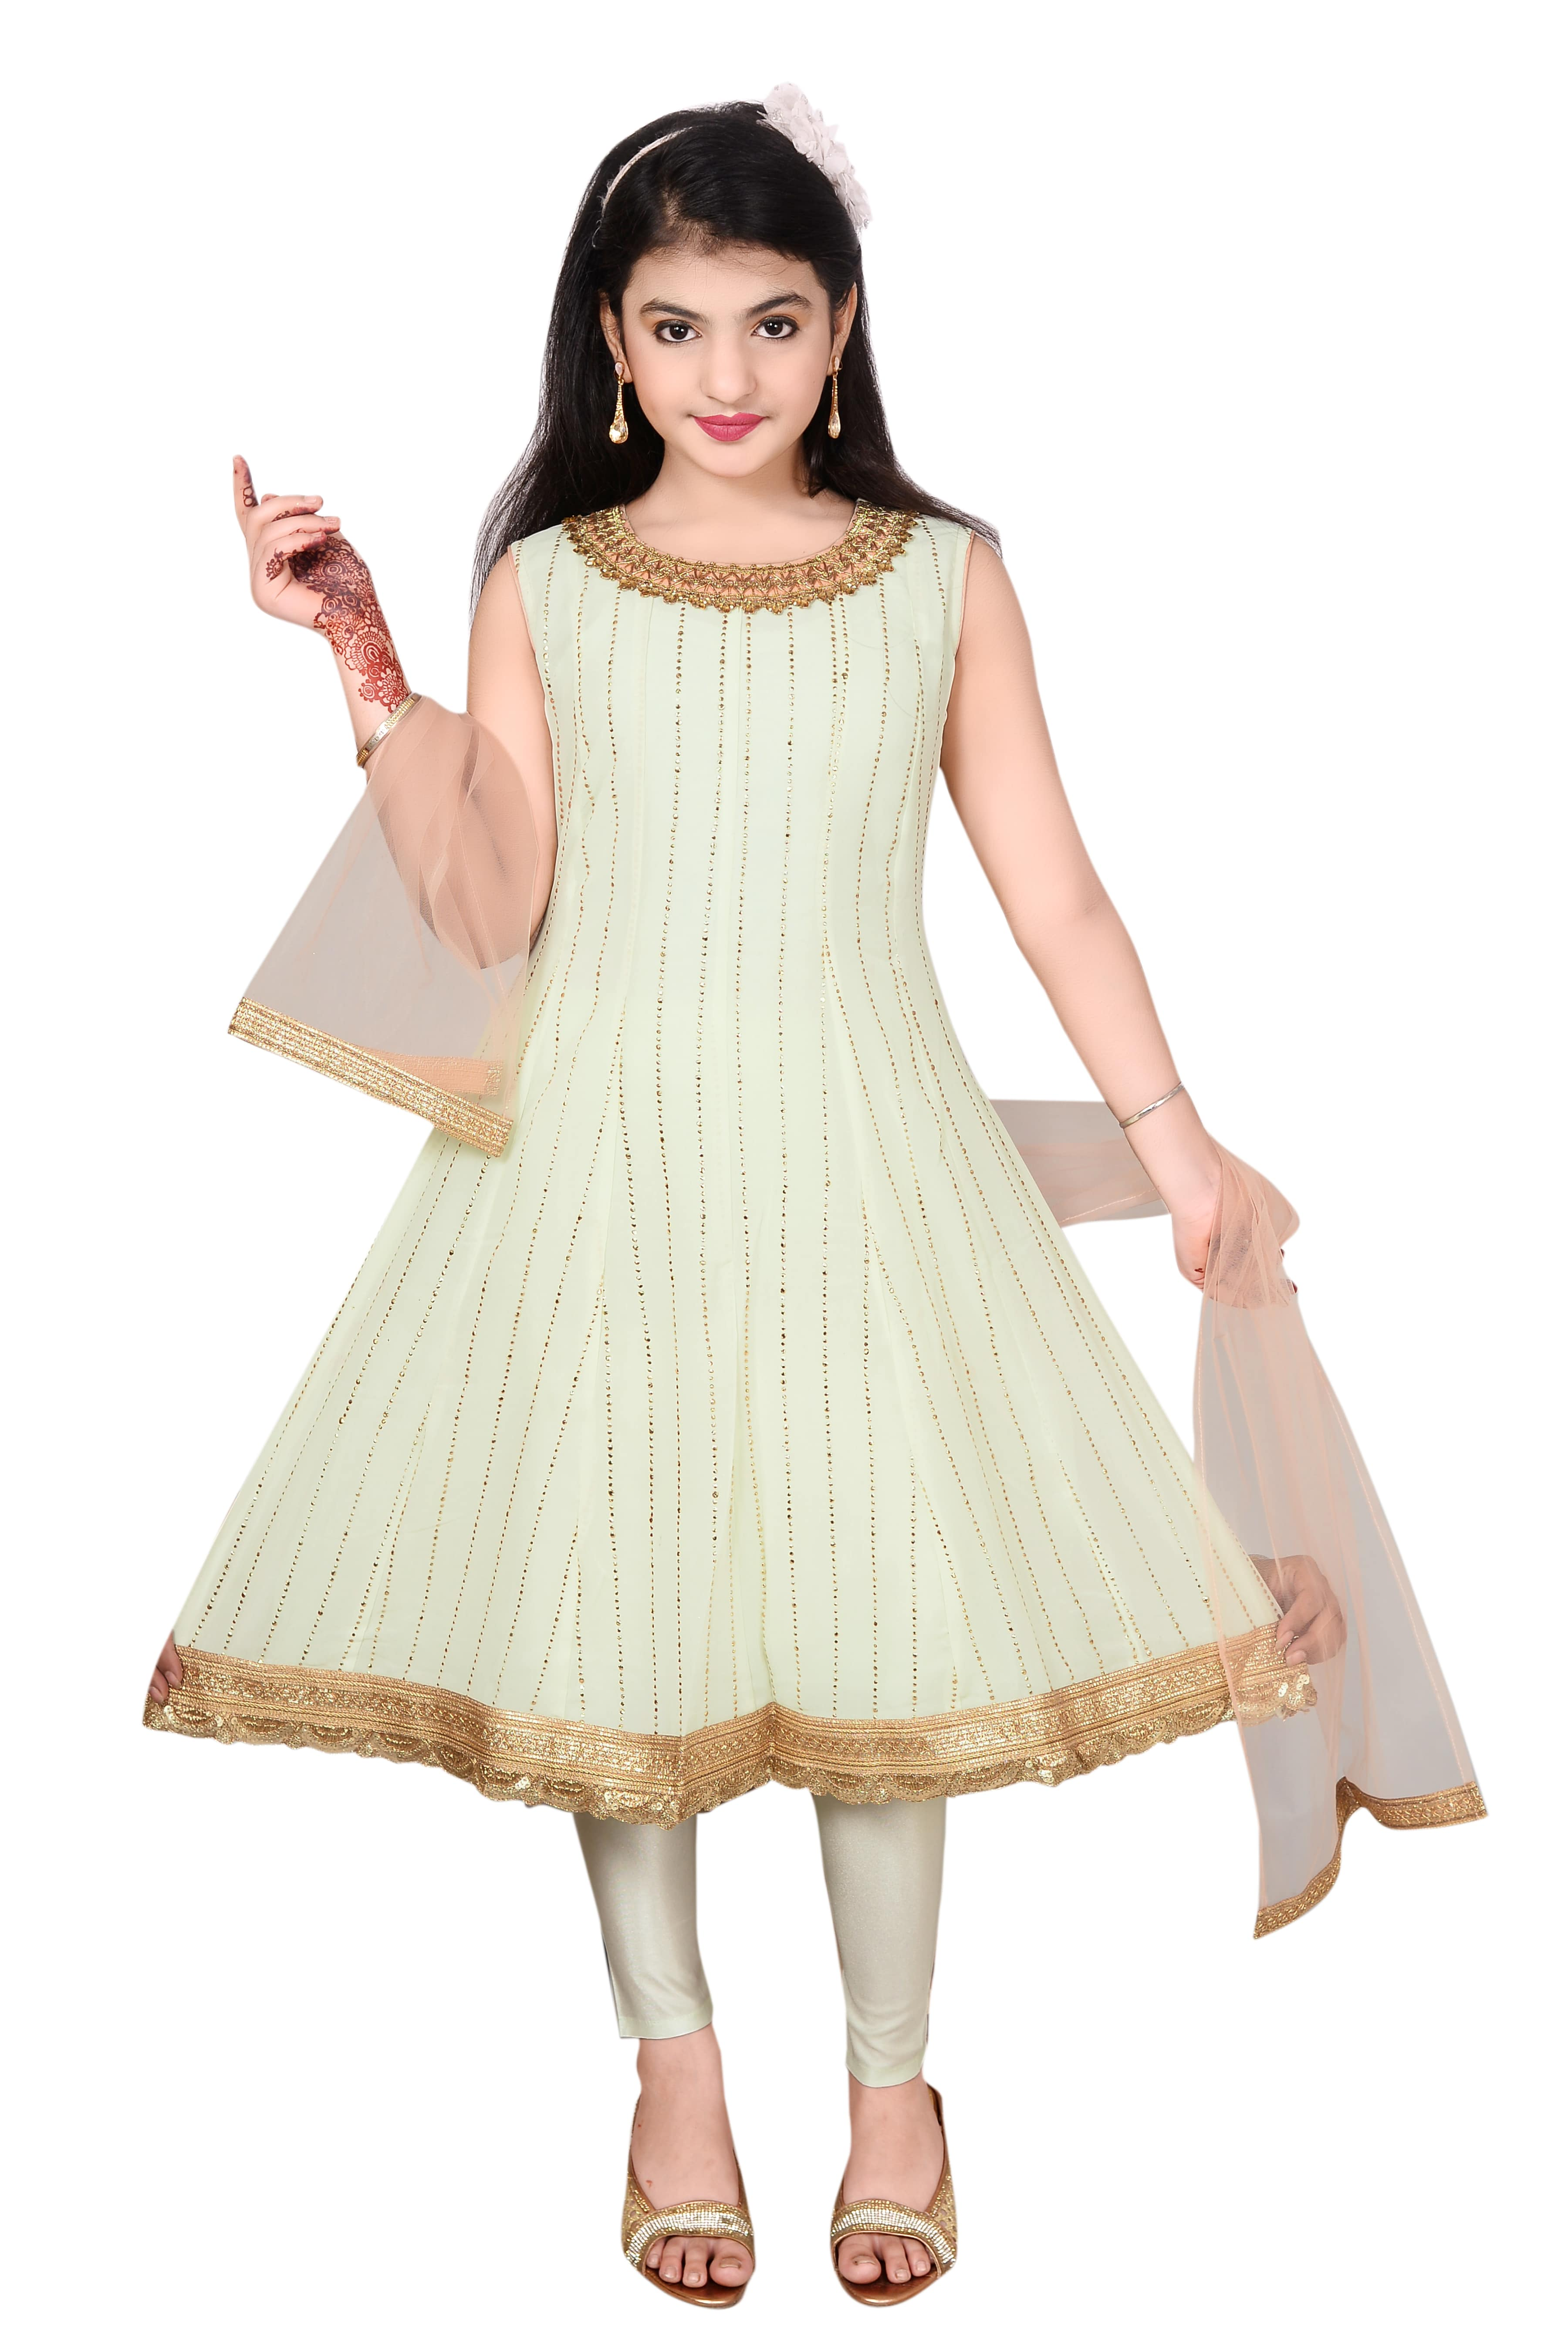 Kids Ethnic Wear In Guwahati